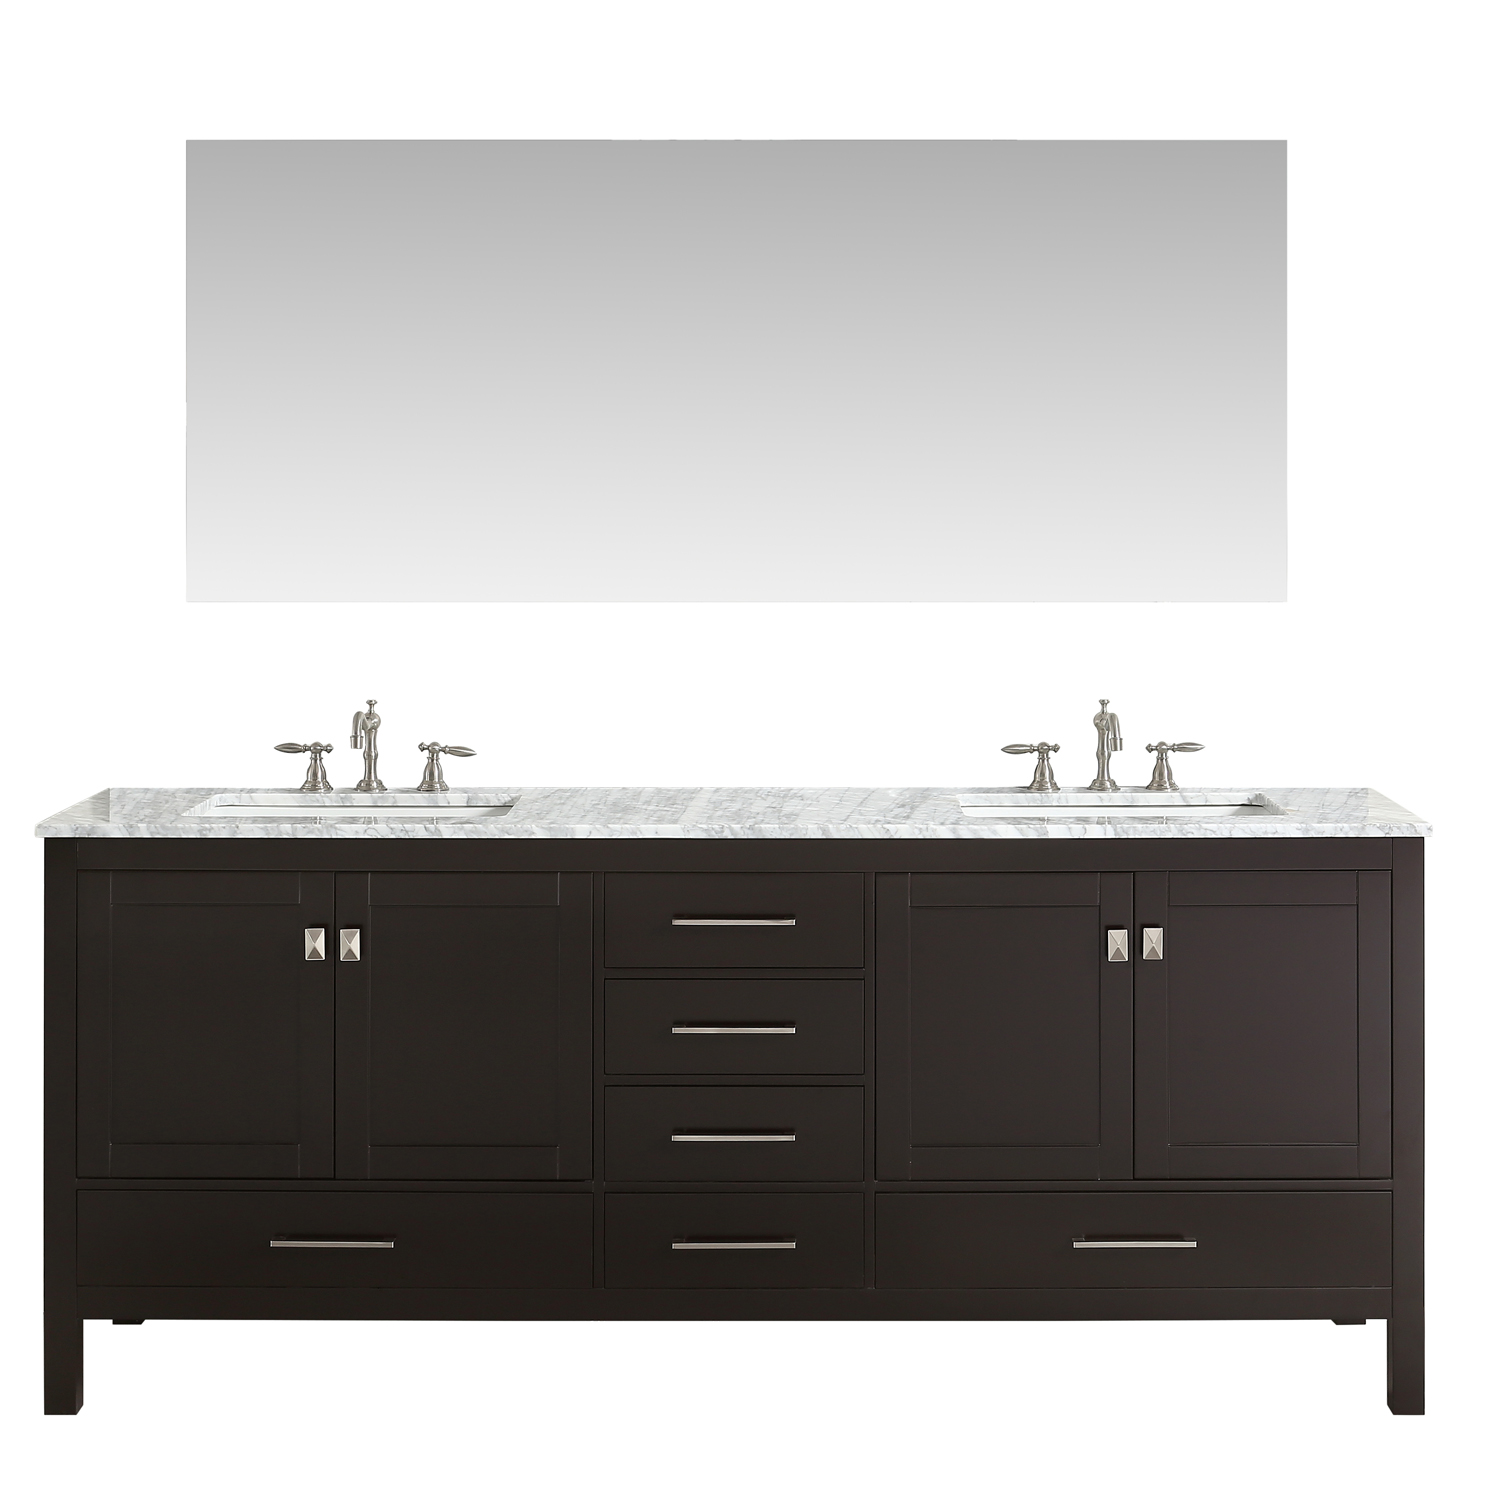 Eviva Aberdeen 84 Transitional Espresso Bathroom Vanity